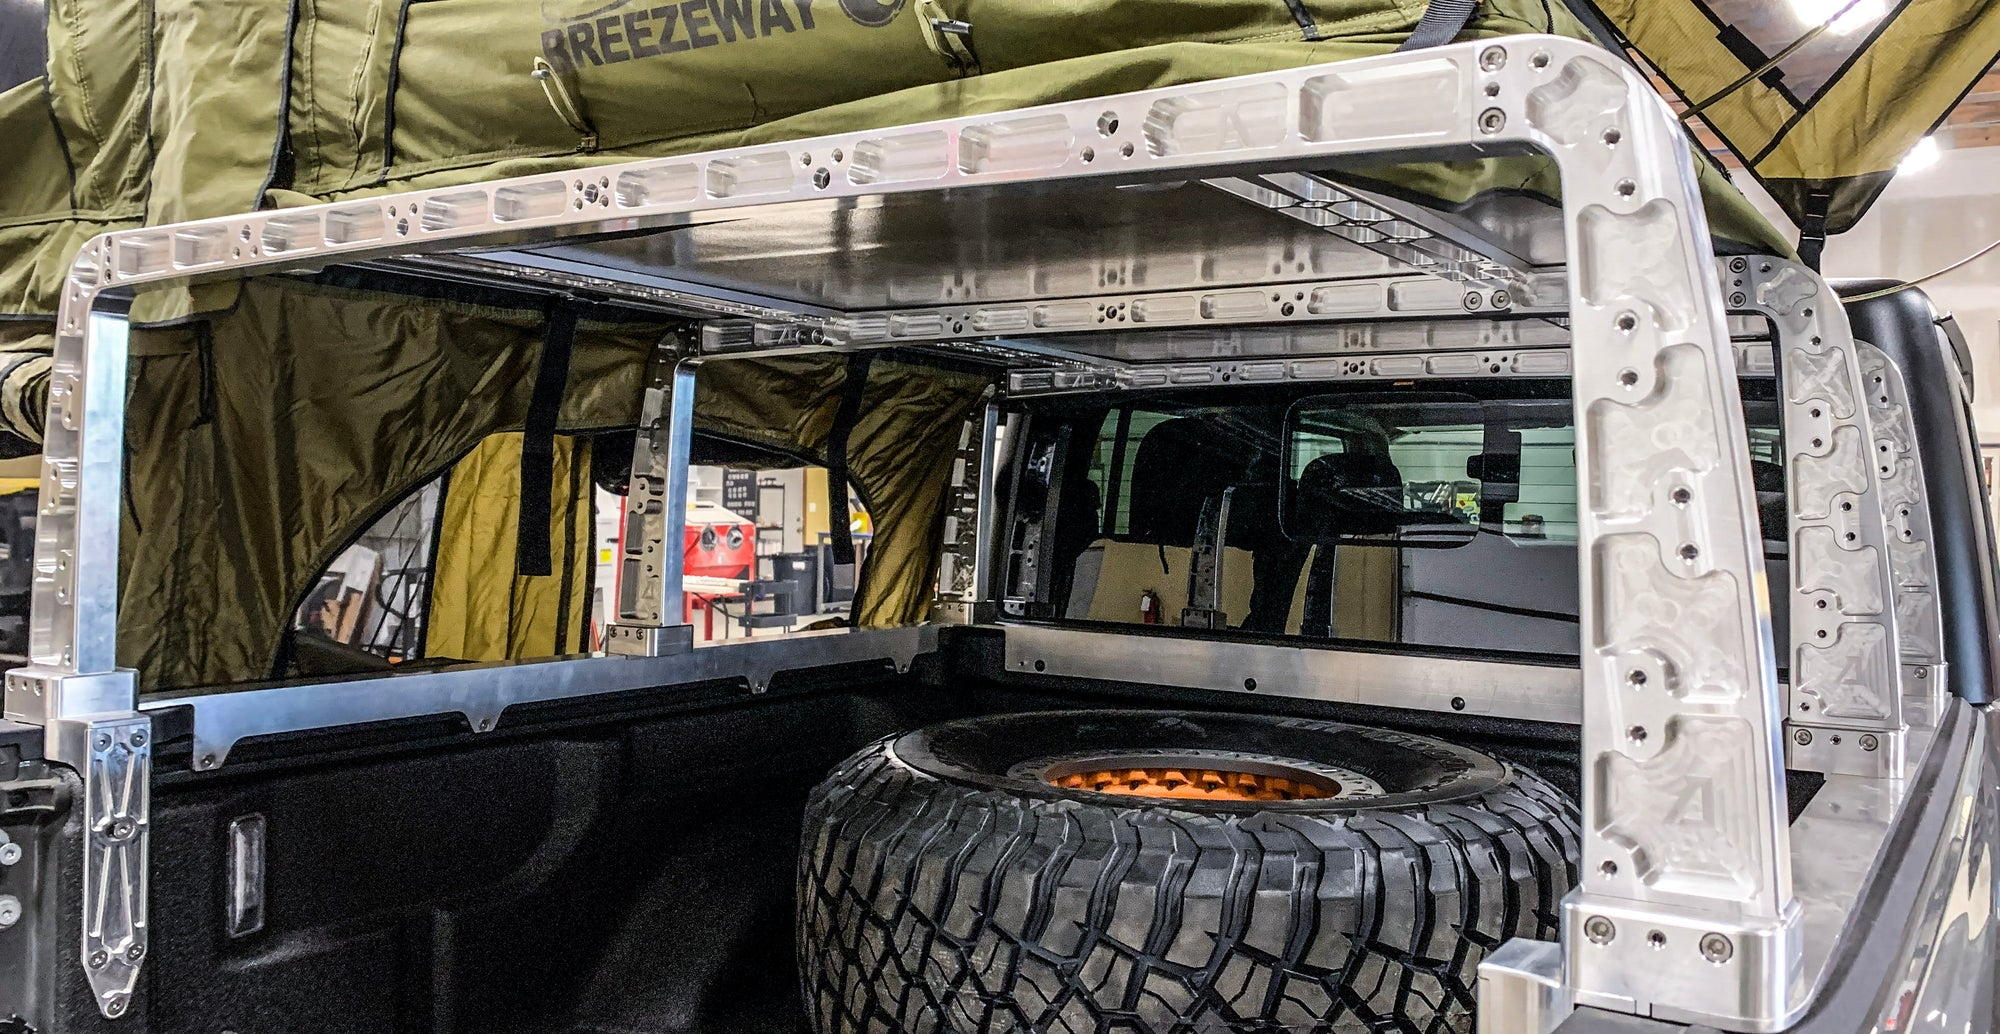 Outlander Gladiator Truck Bed Rack System from rear upright crossbeams and stringer bed cap